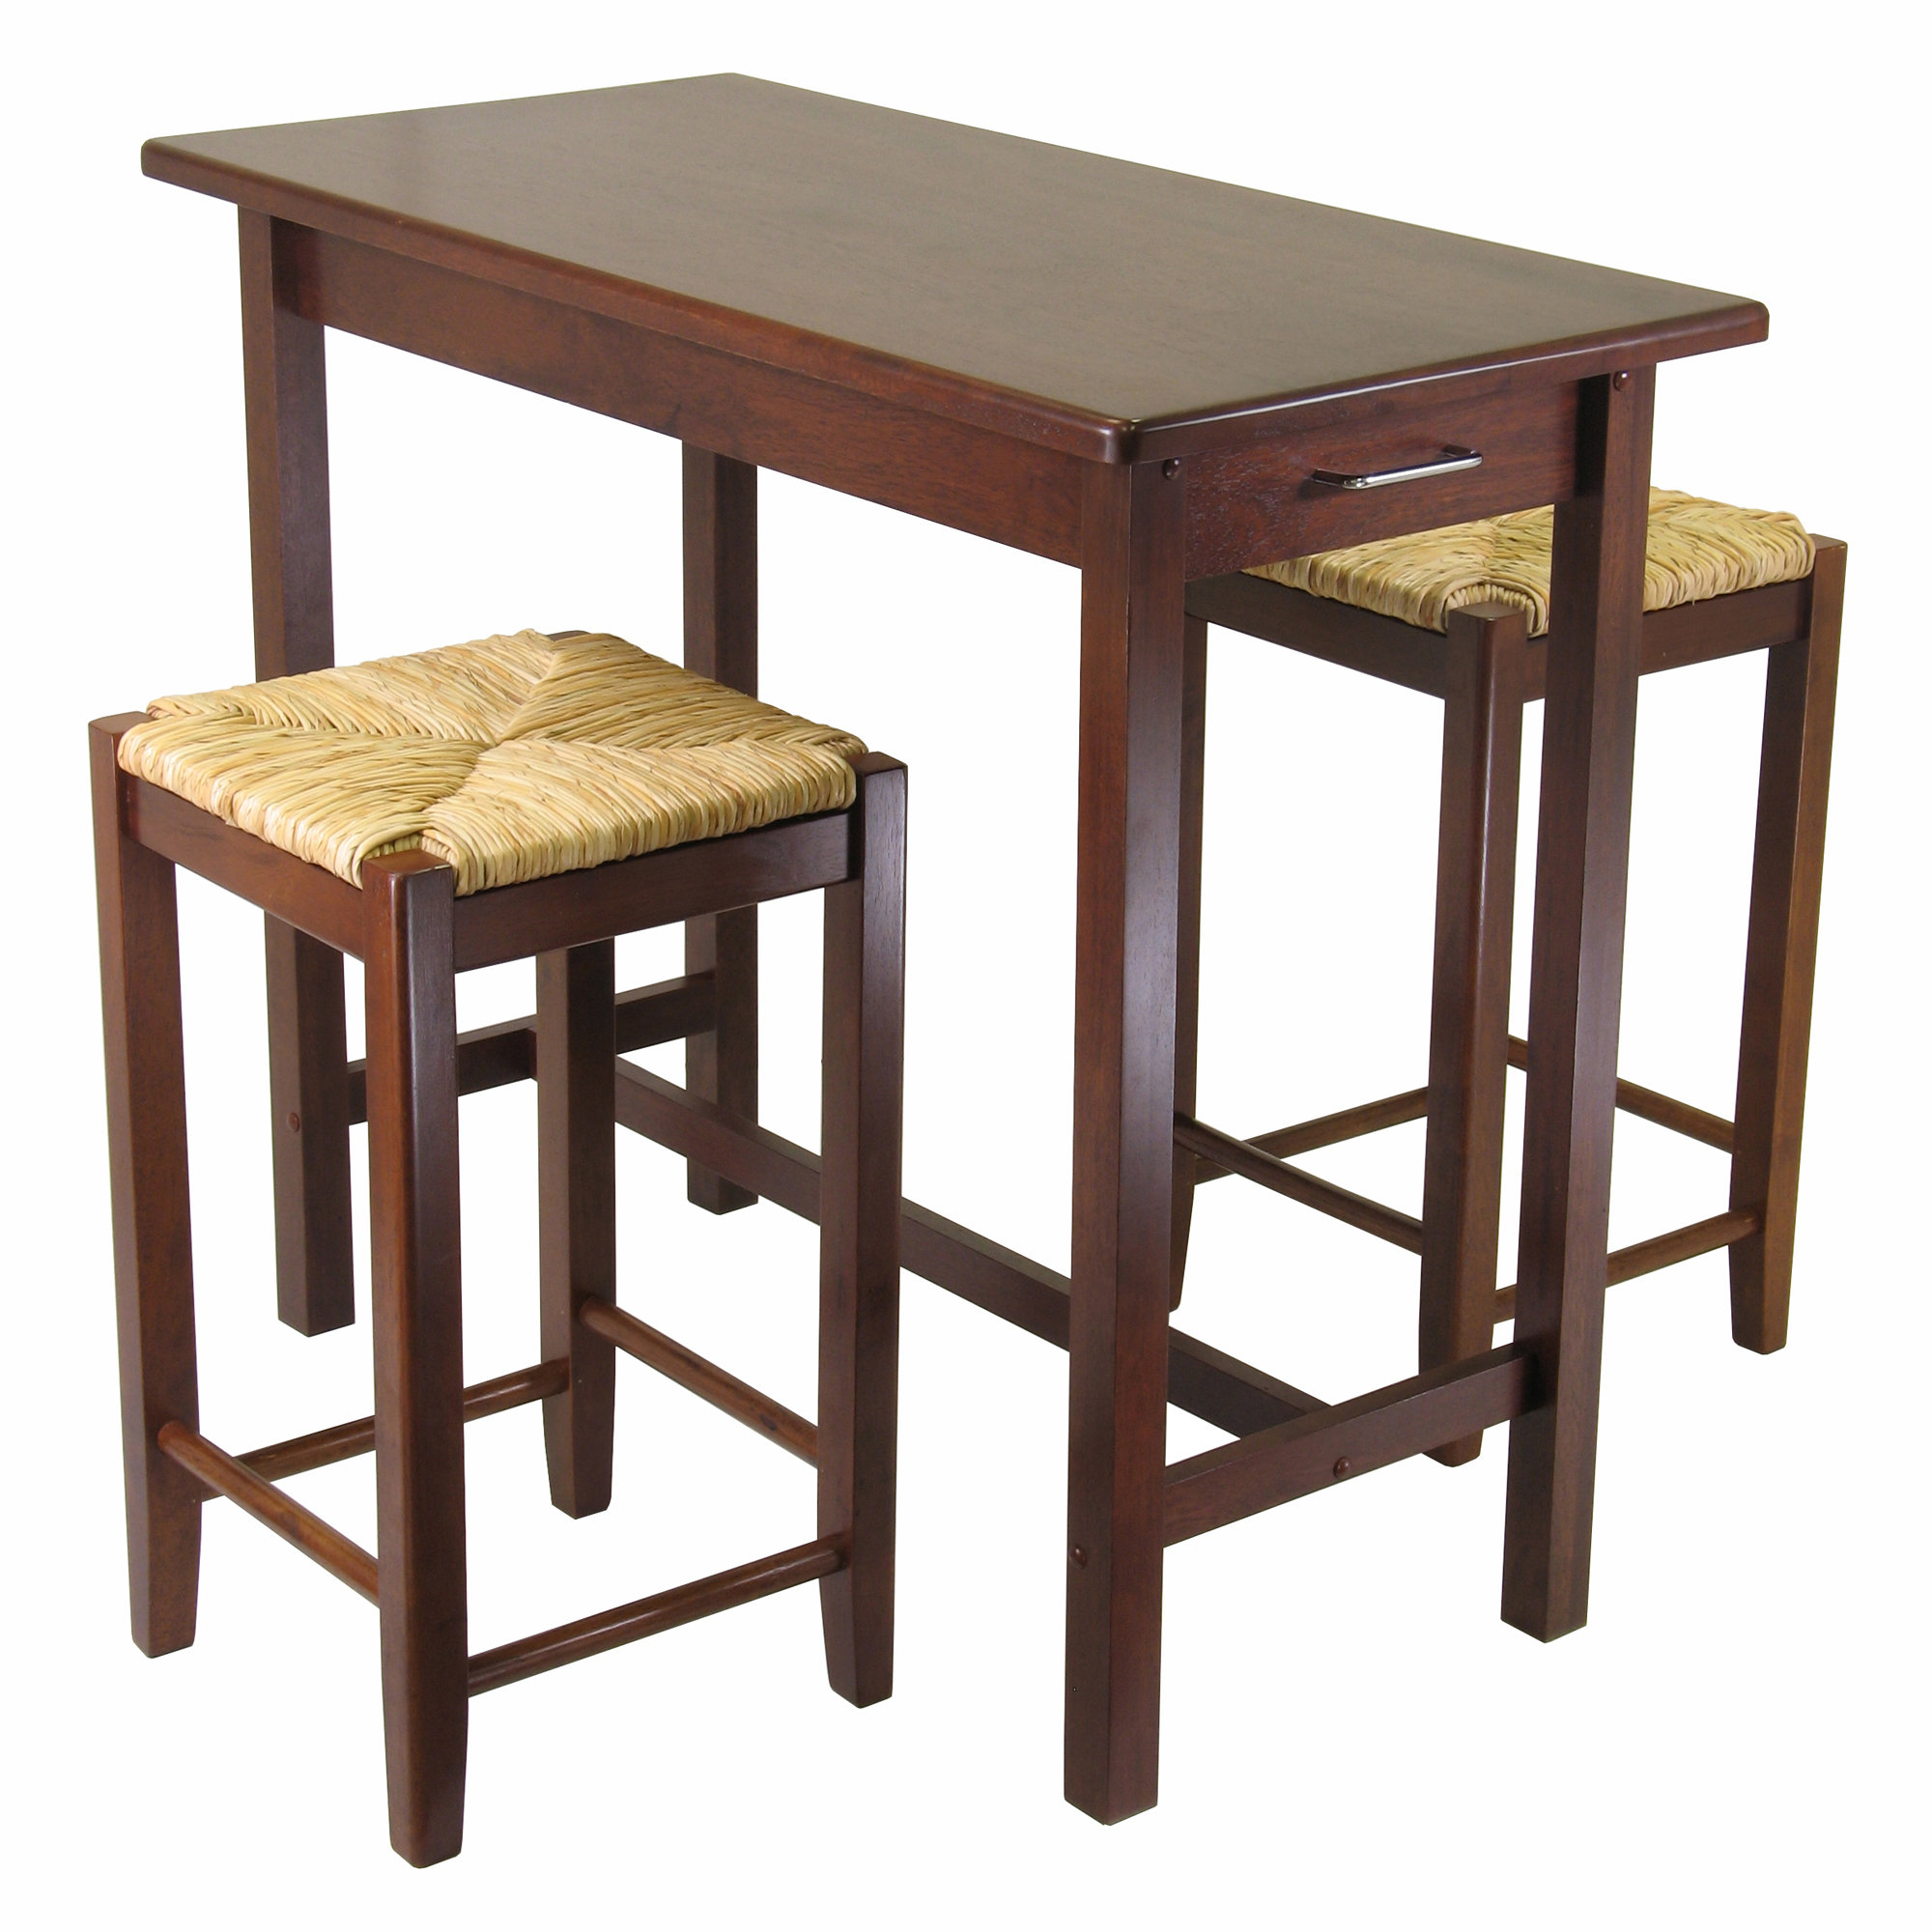 Winsome 3 Piece Counter Height Dining Set Pertaining To Preferred Tenney 3 Piece Counter Height Dining Sets (View 6 of 20)